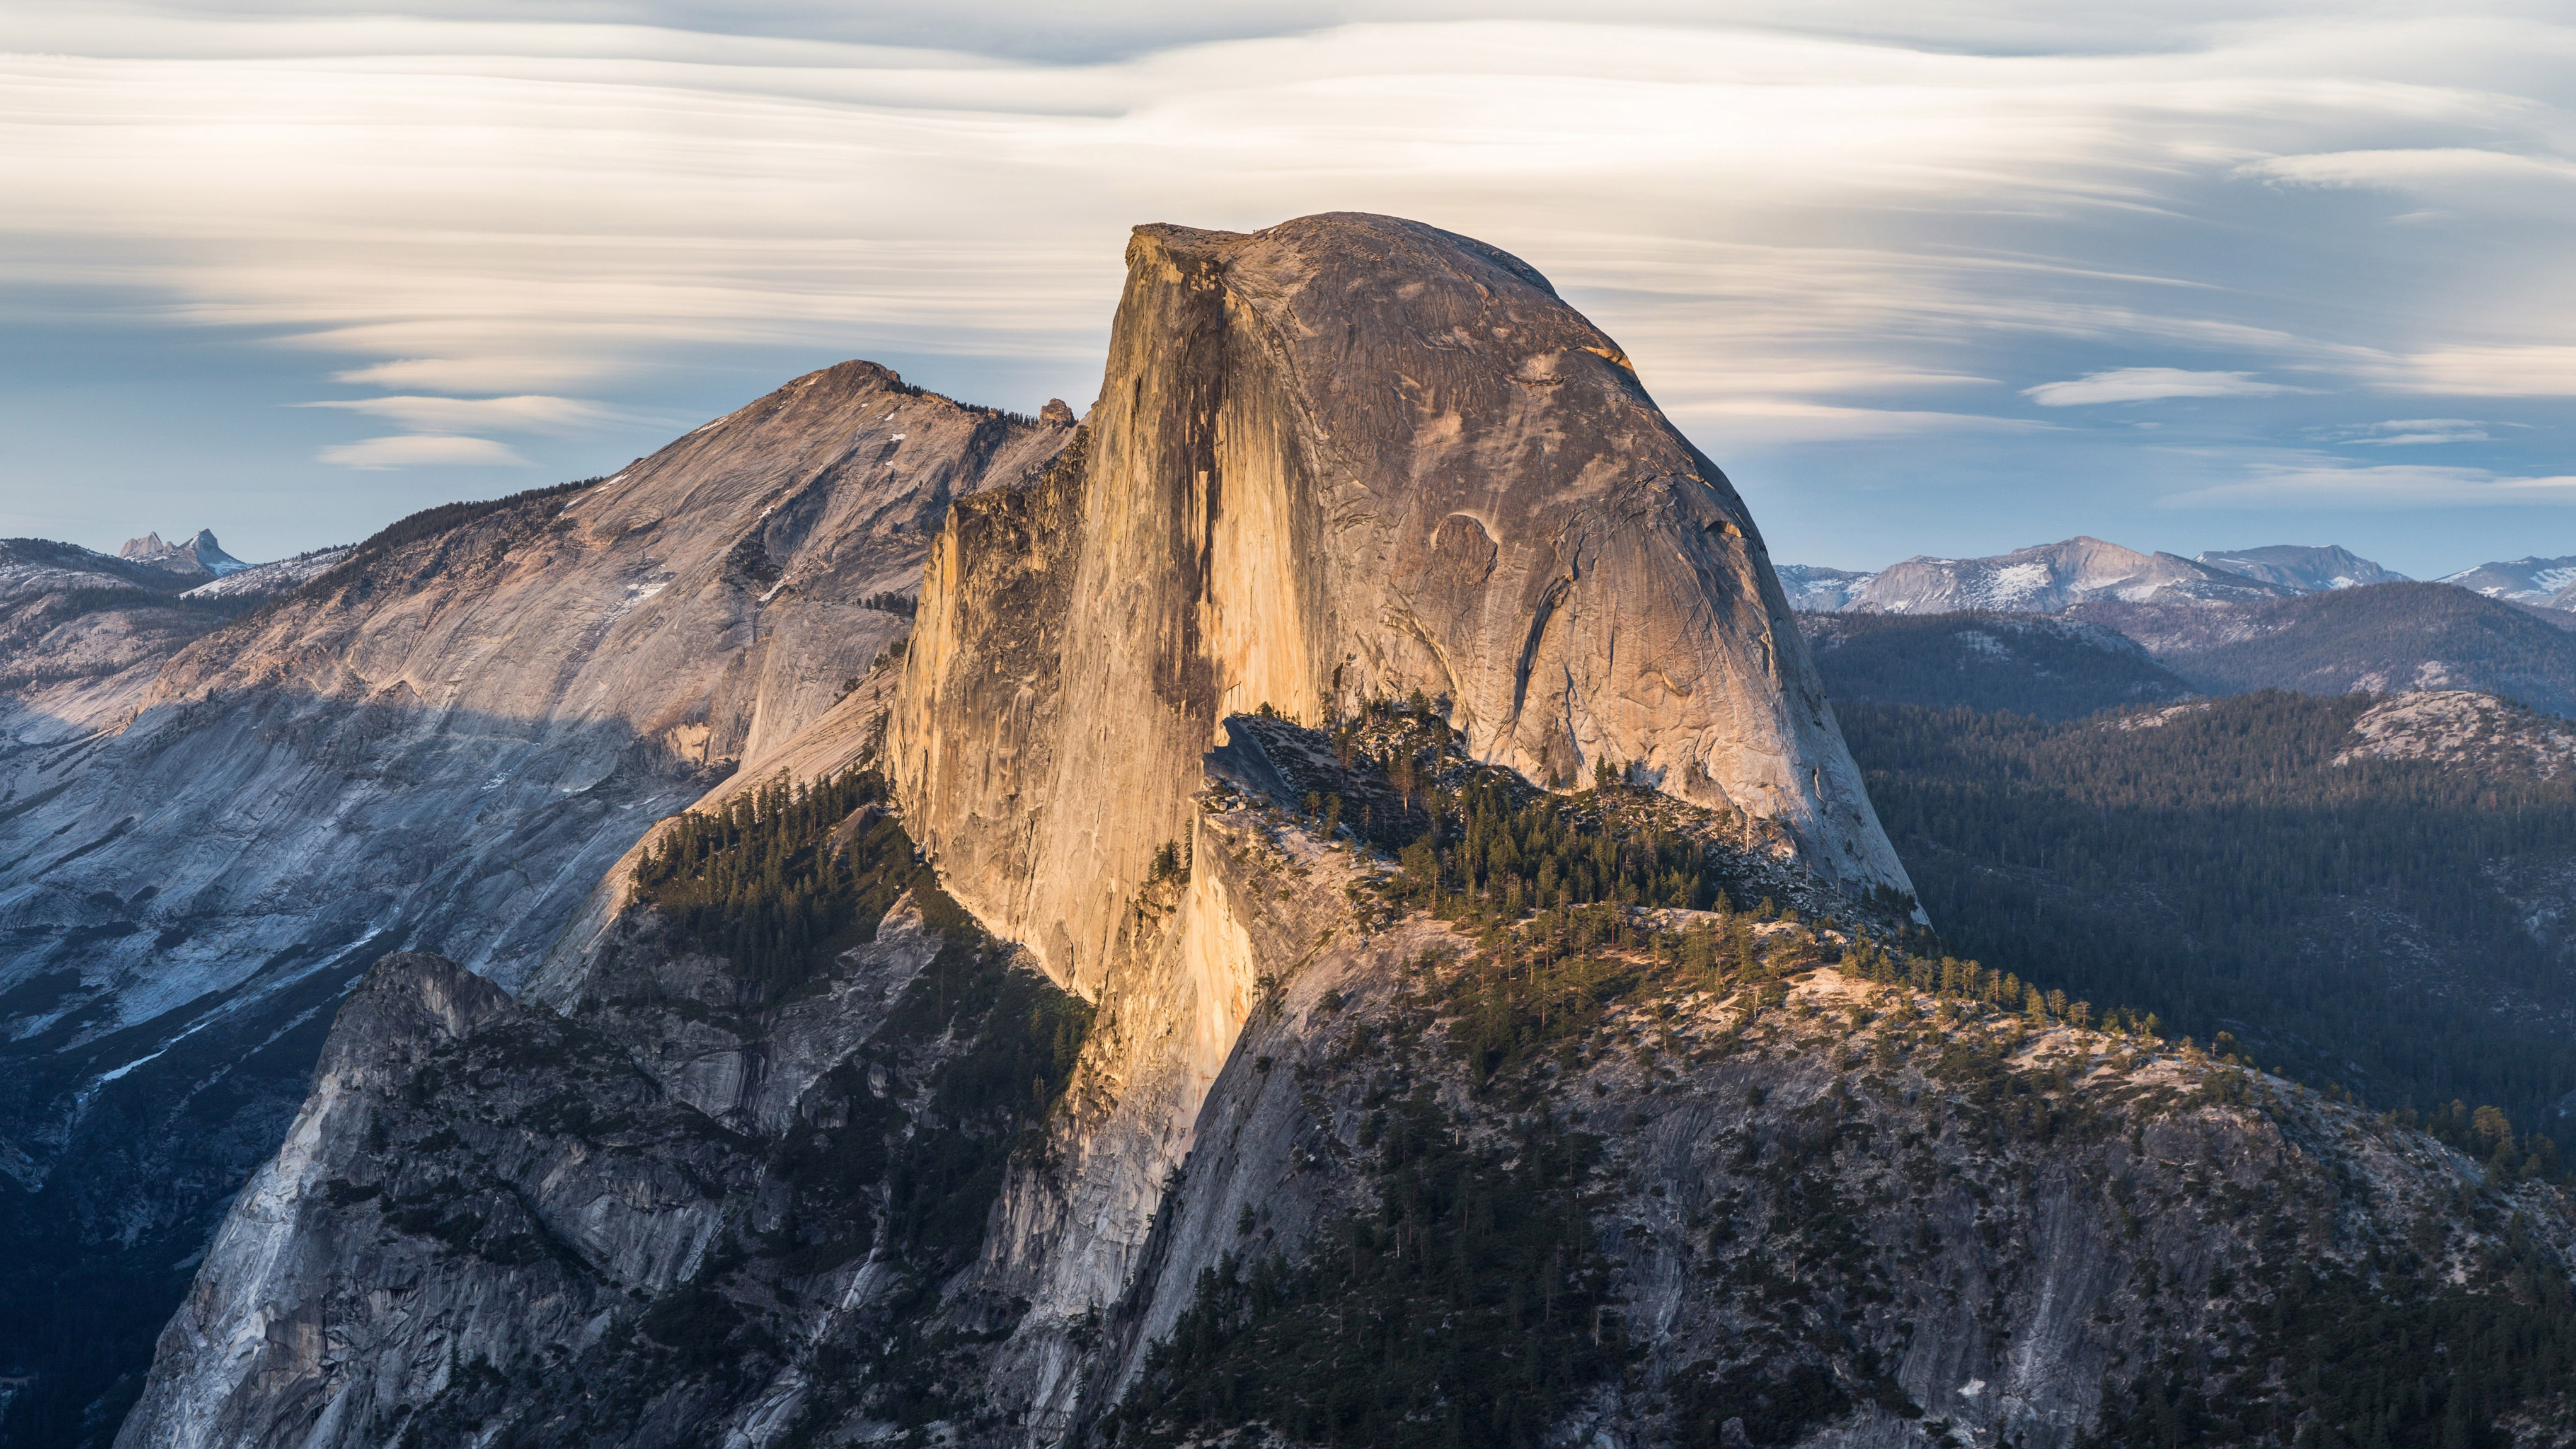 Yosemite's Half Dome can be BARTable